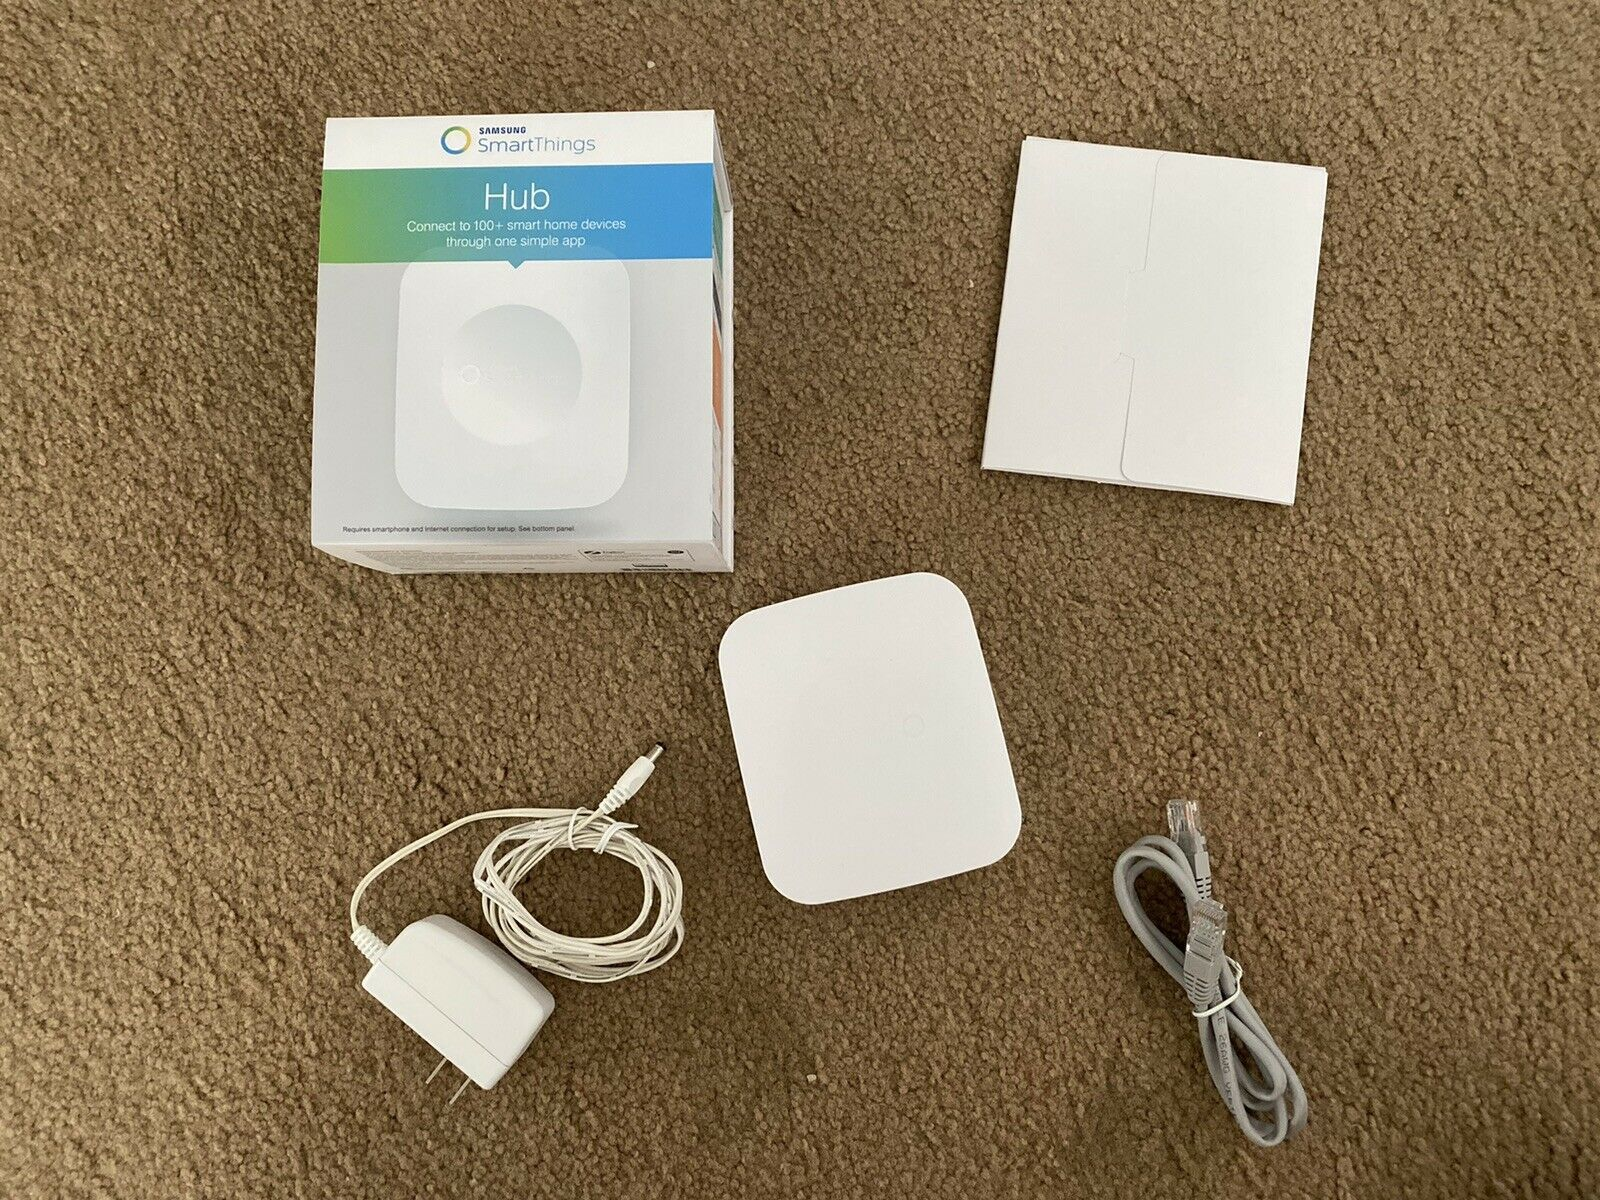 Samsung Smartthings Hub Used Box Smart Home Automation